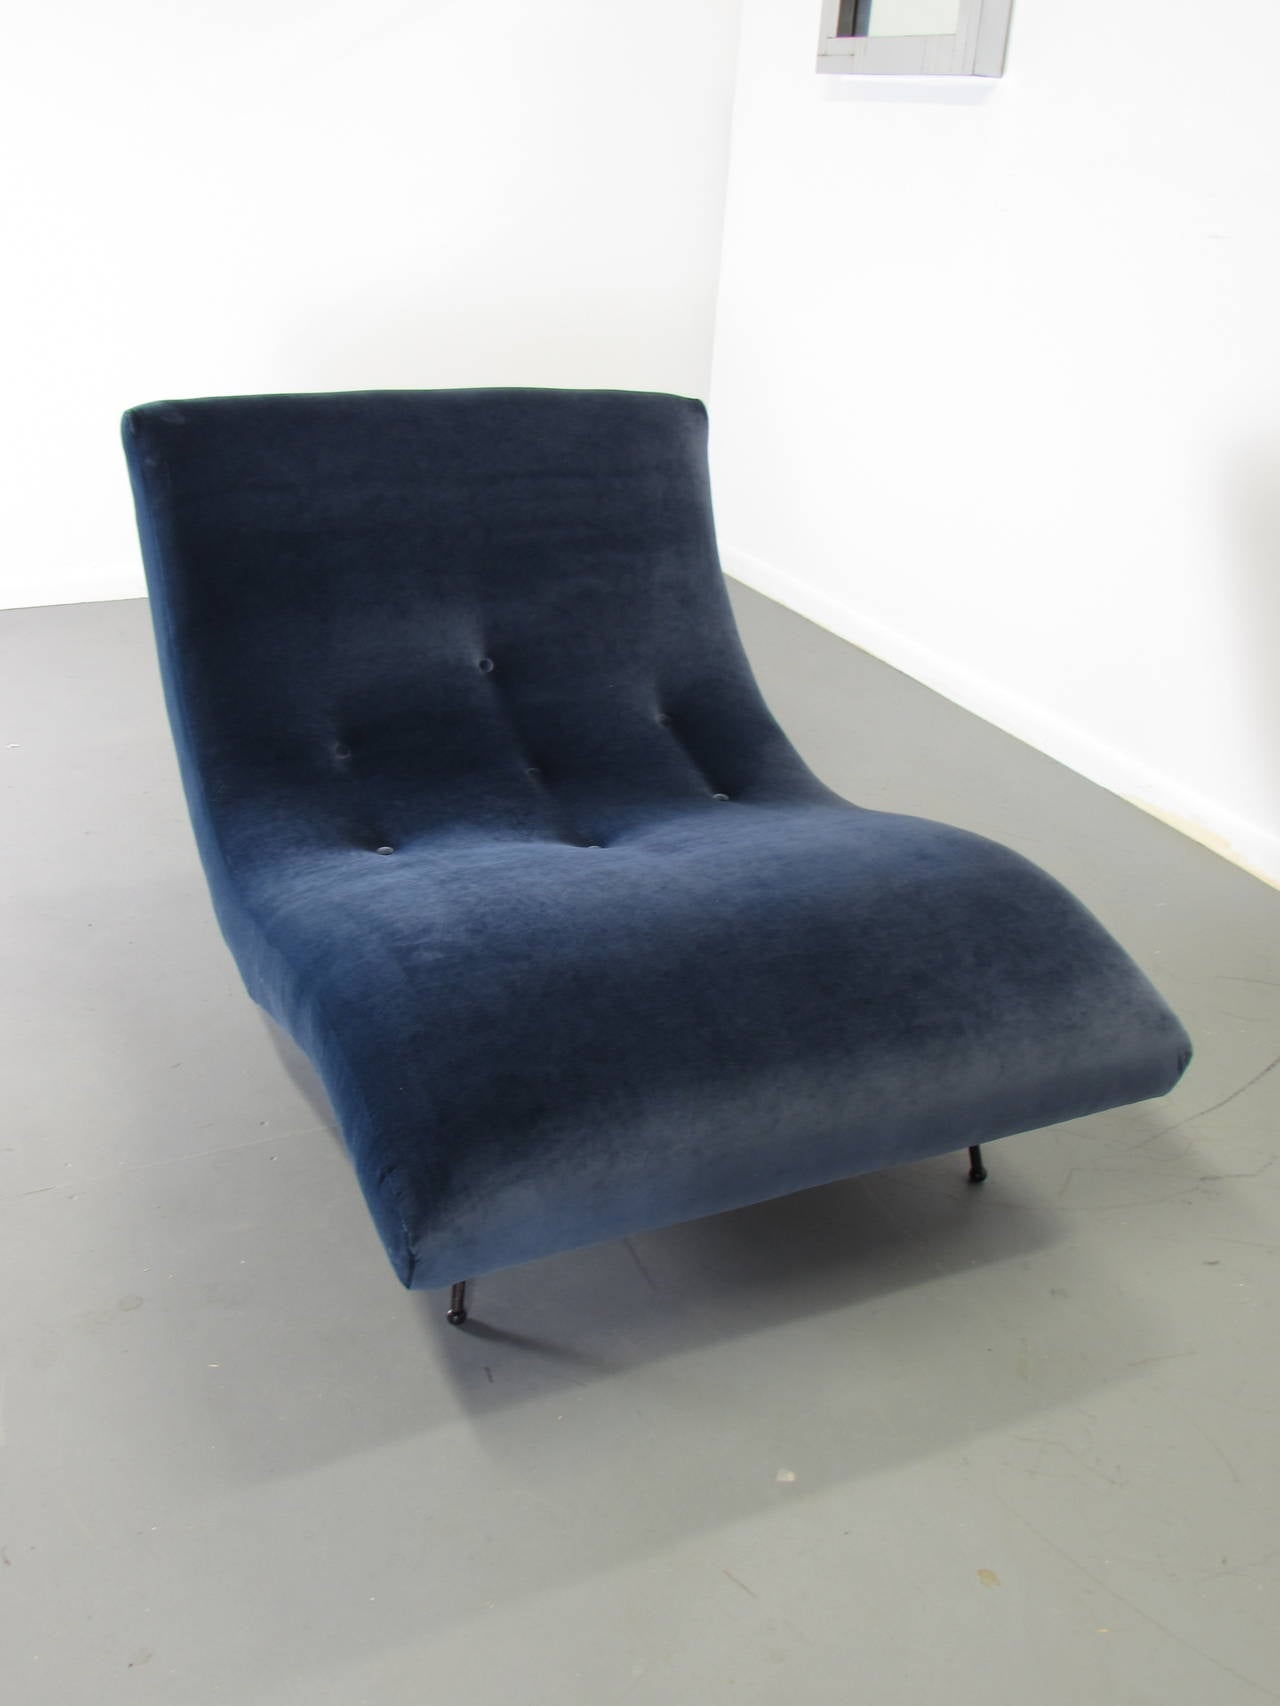 Undulating Wave Chaise Lounge By Adrian Pearsall Rare